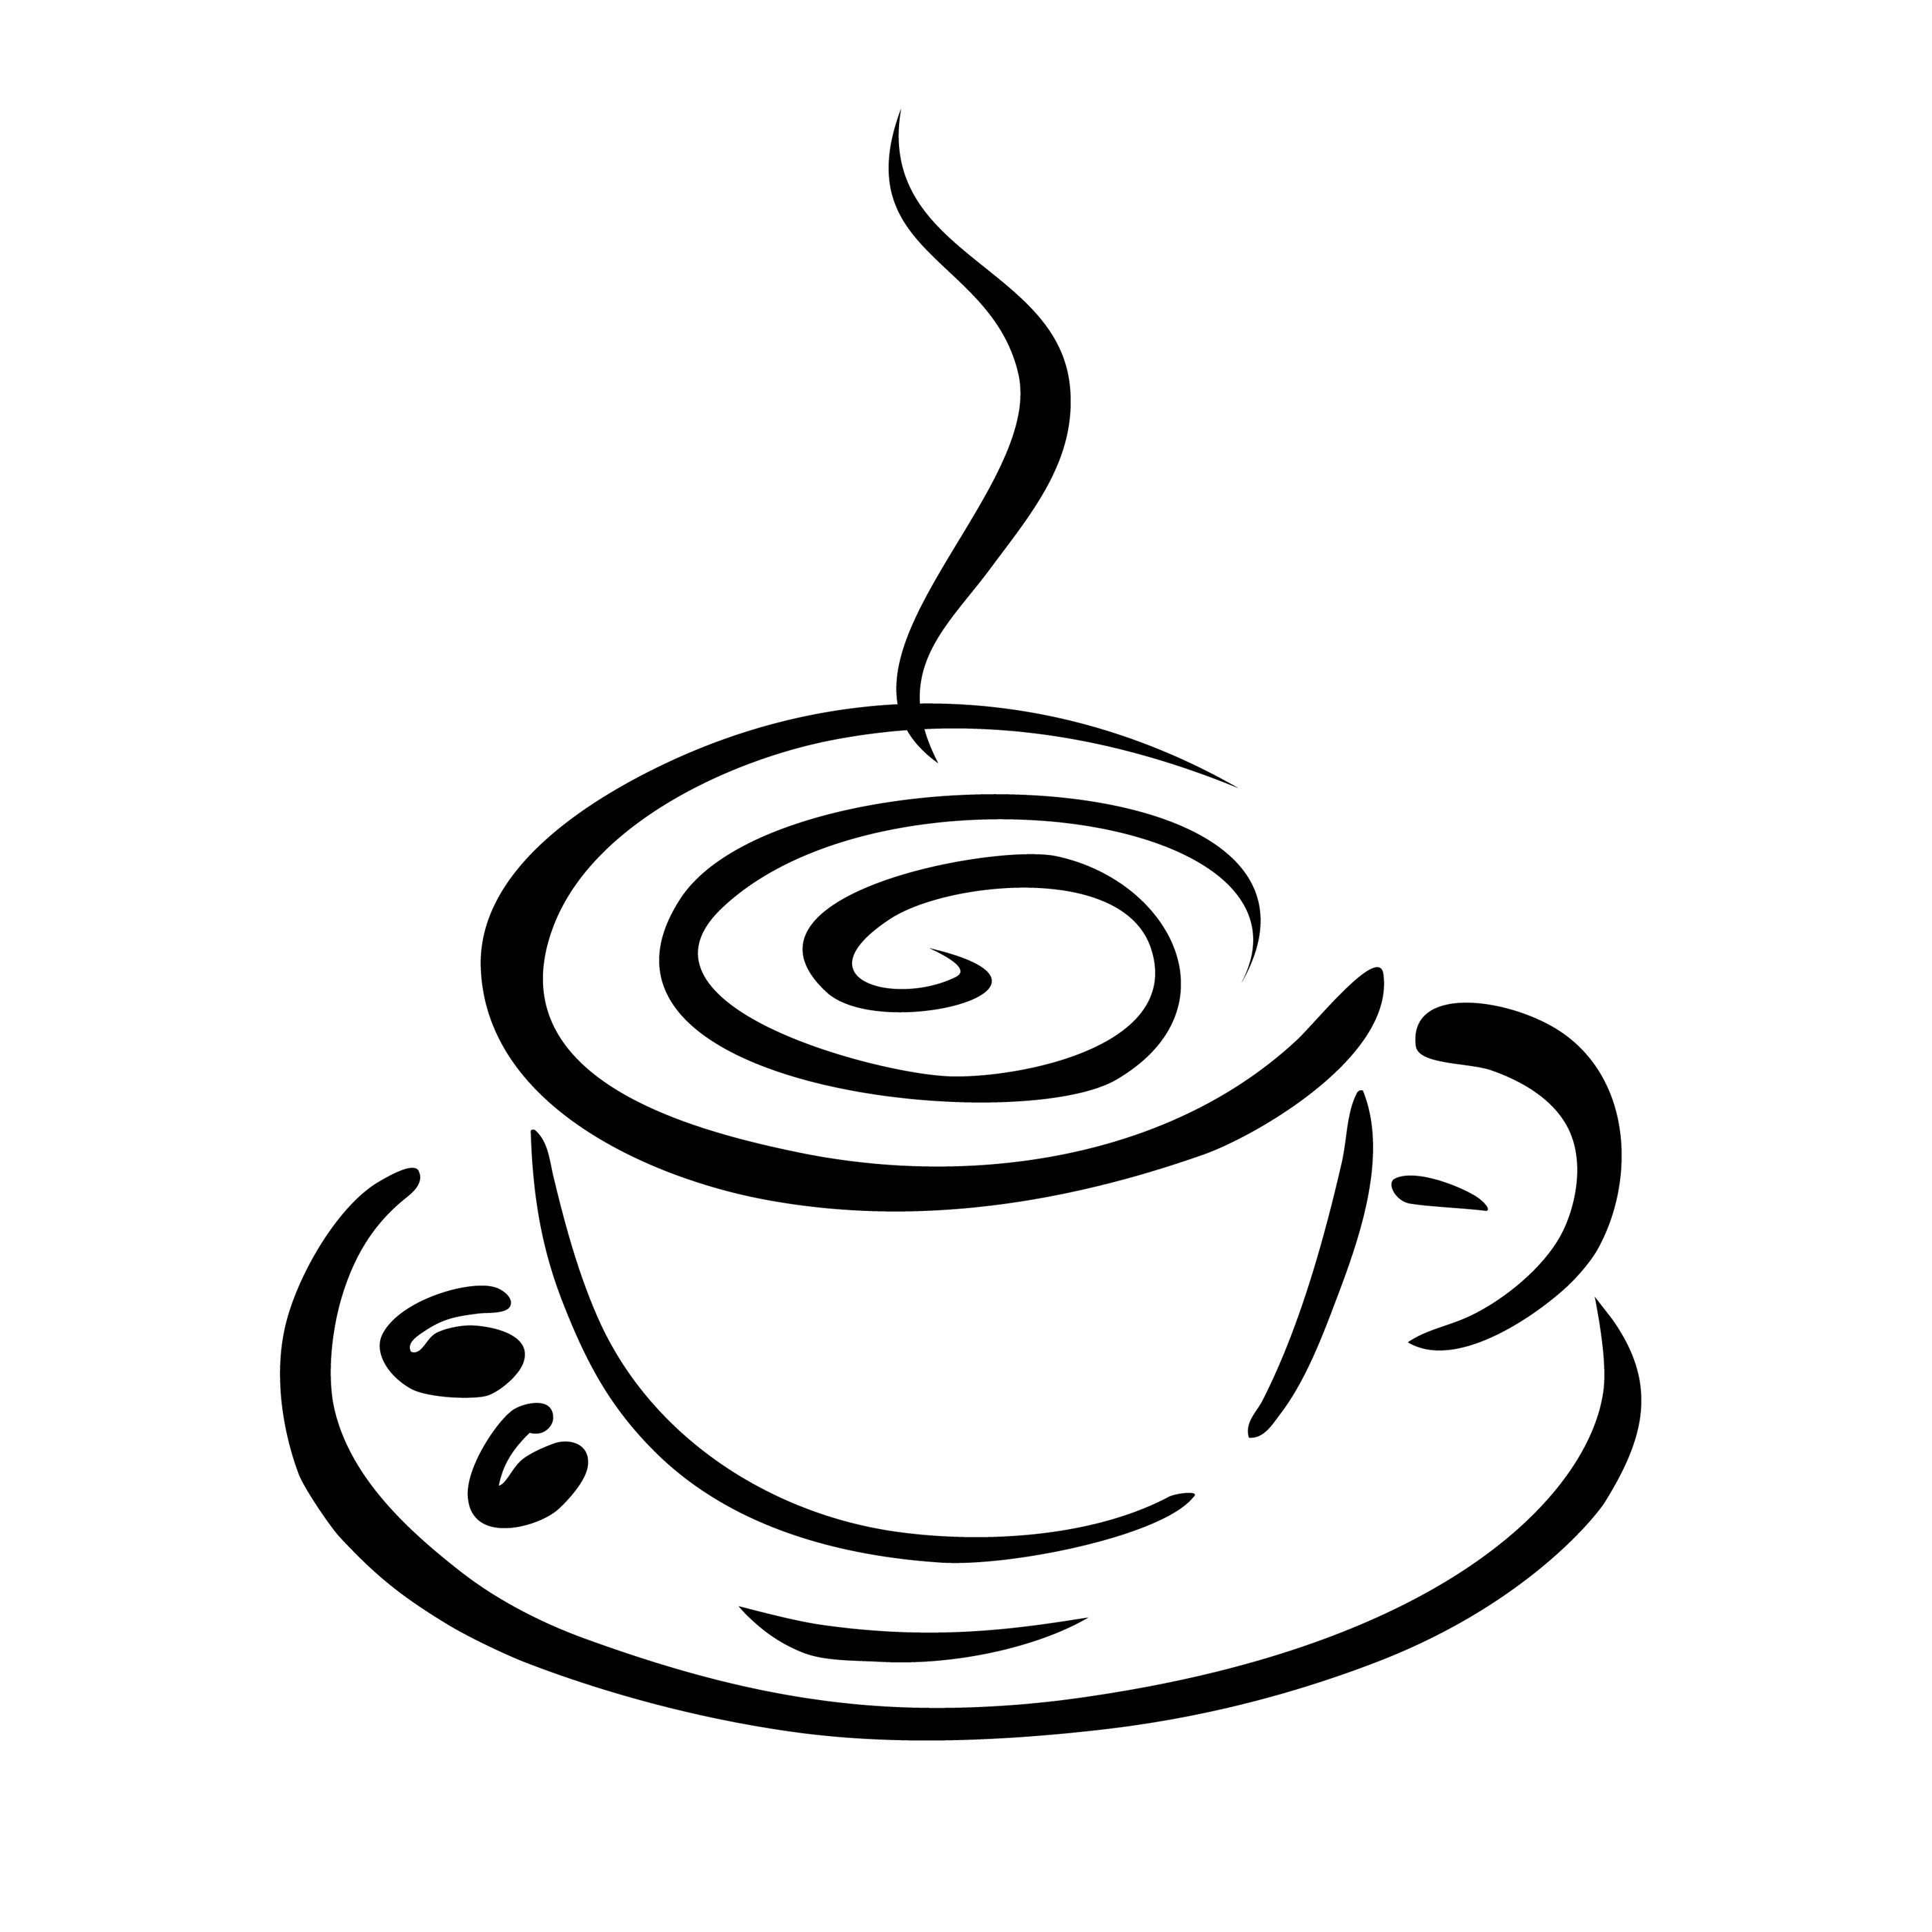 coffee cup black and white clipart clipart kid [ 2800 x 2800 Pixel ]